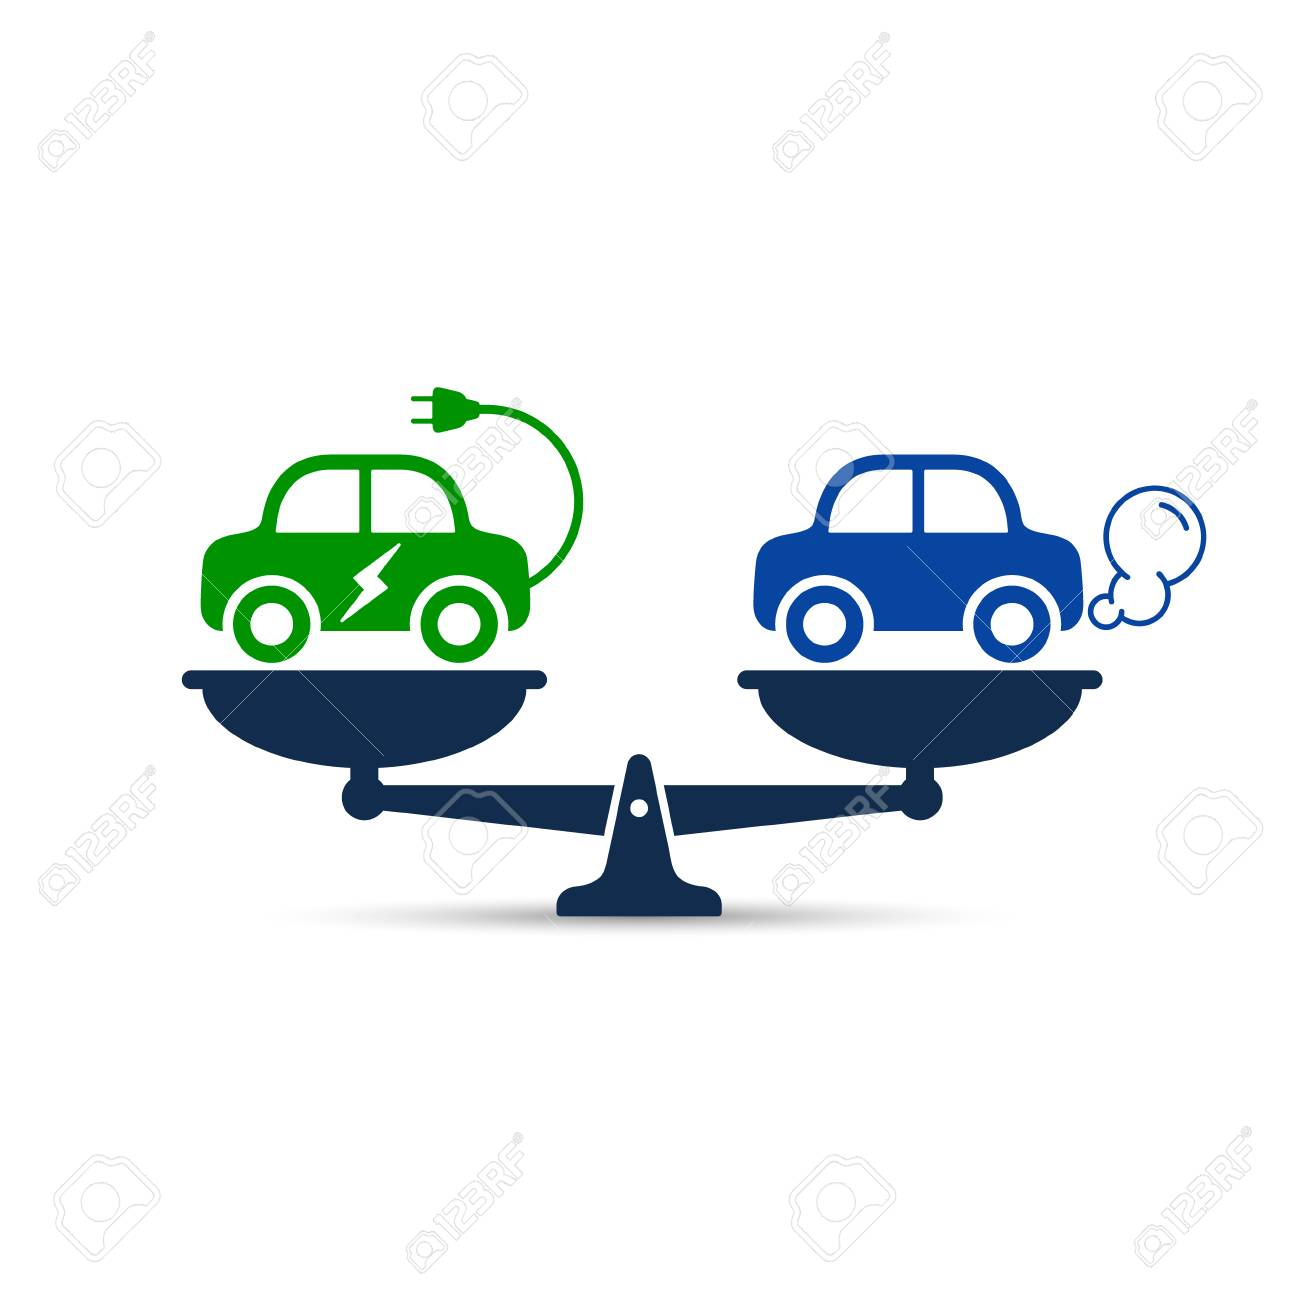 Electric Car Versus Gasoline And Diesel Car On Scales Icon Comparison Royalty Free Cliparts Vectors And Stock Illustration Image 100989177